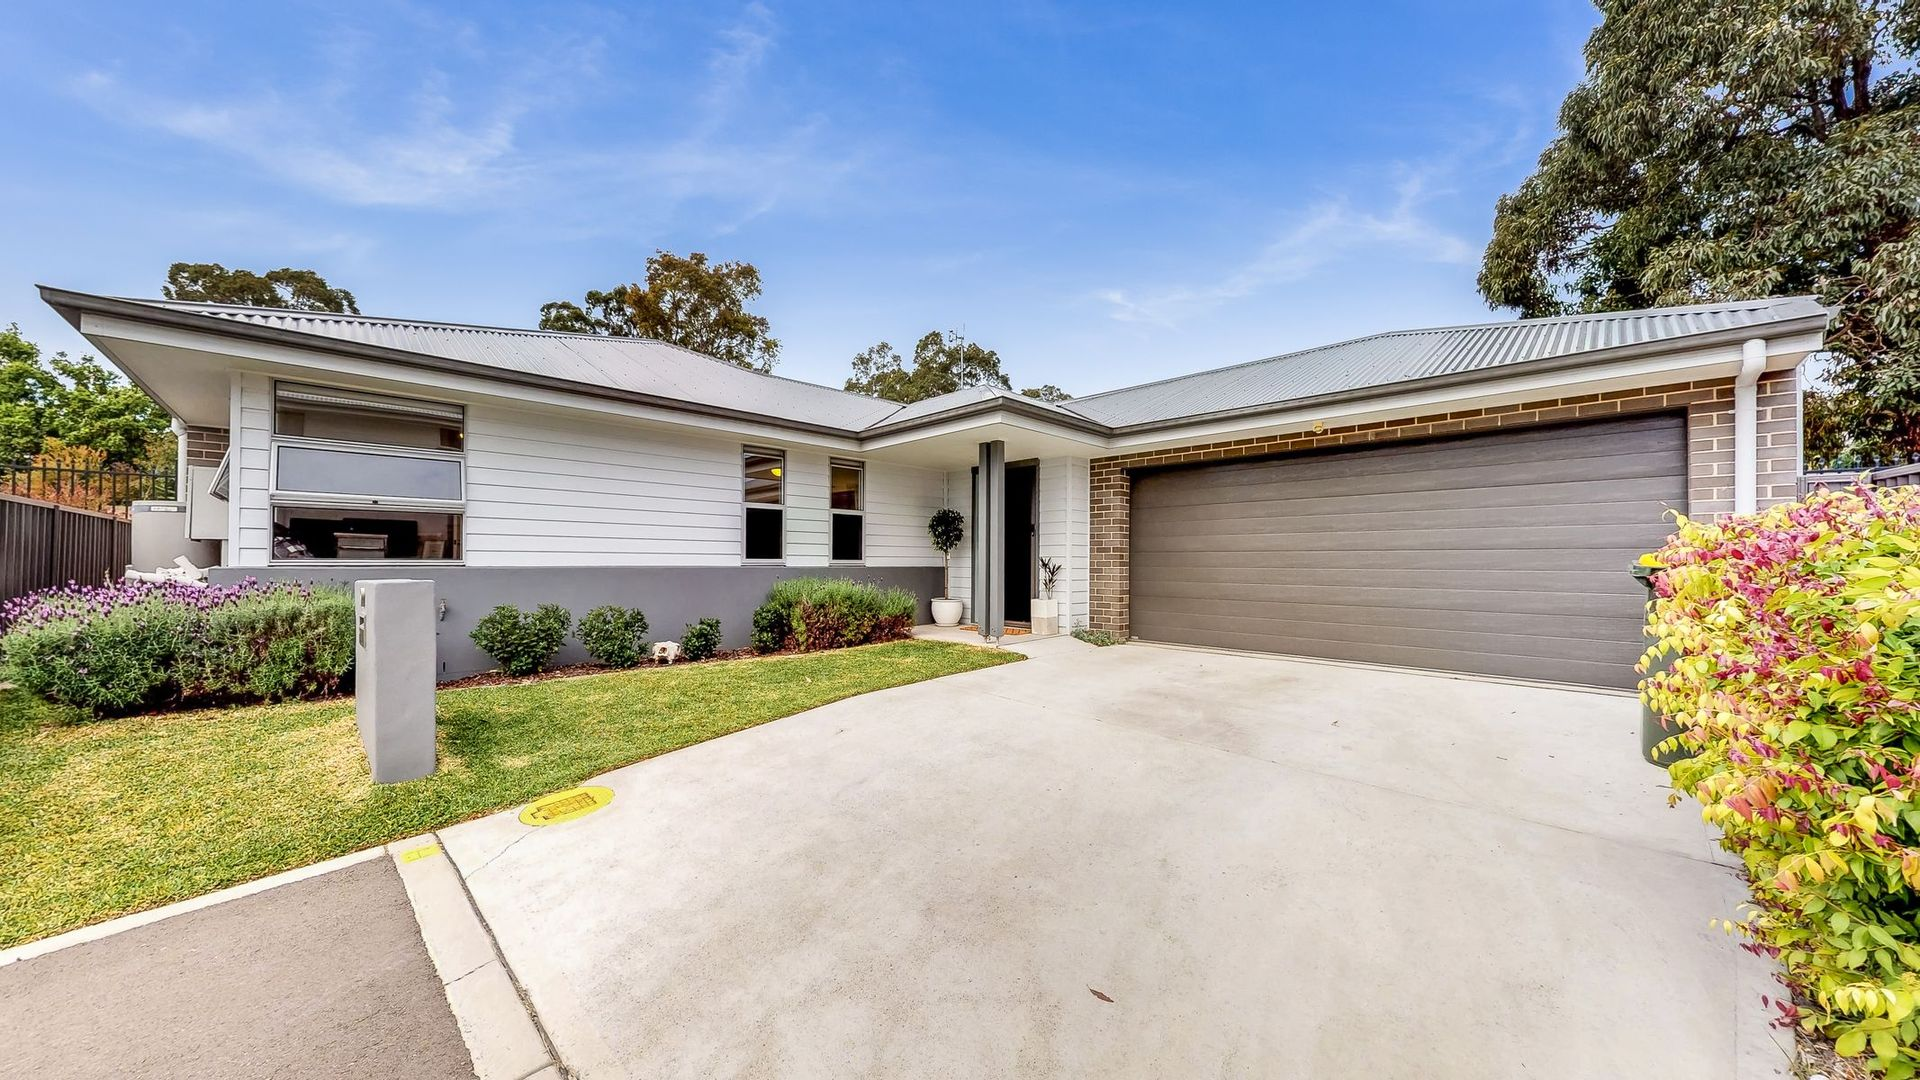 9/51 Wansbeck Valley Road, Cardiff NSW 2285, Image 0